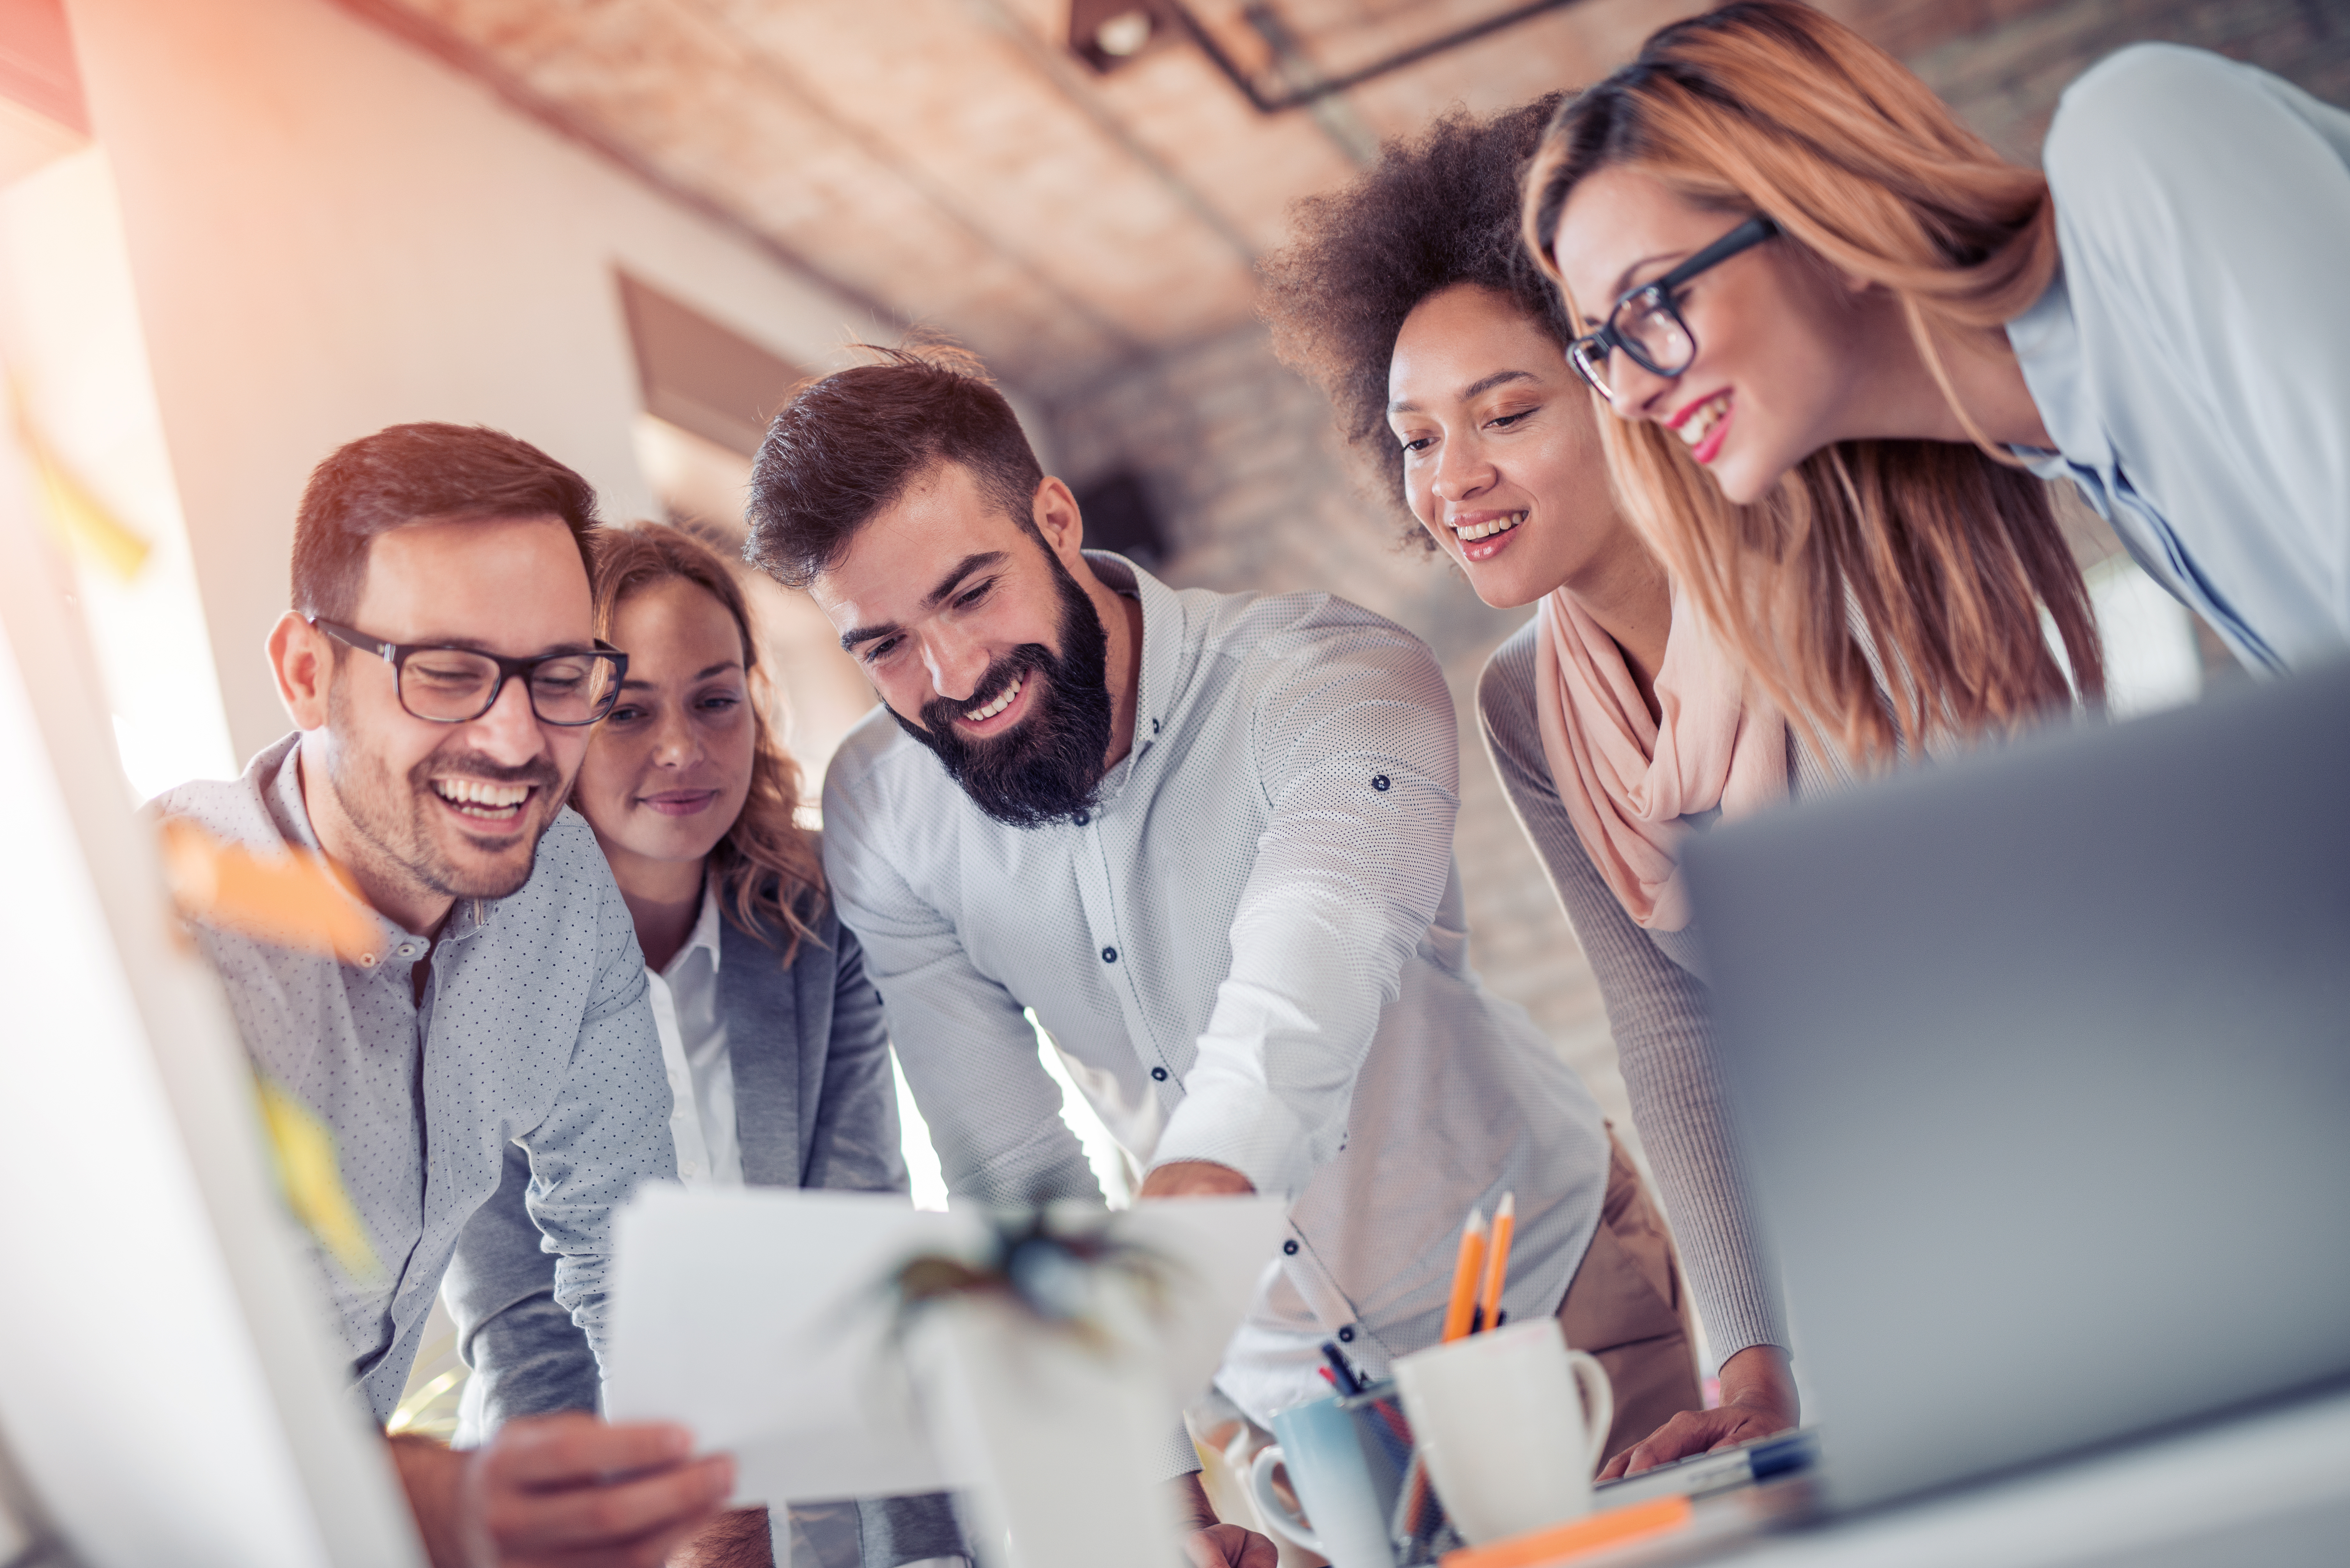 LC GLOBAL Academy -Employee Engagement - 2021 - New York - Munich Germany - Consulting Change Growth Innovation AdobeStock_176866761